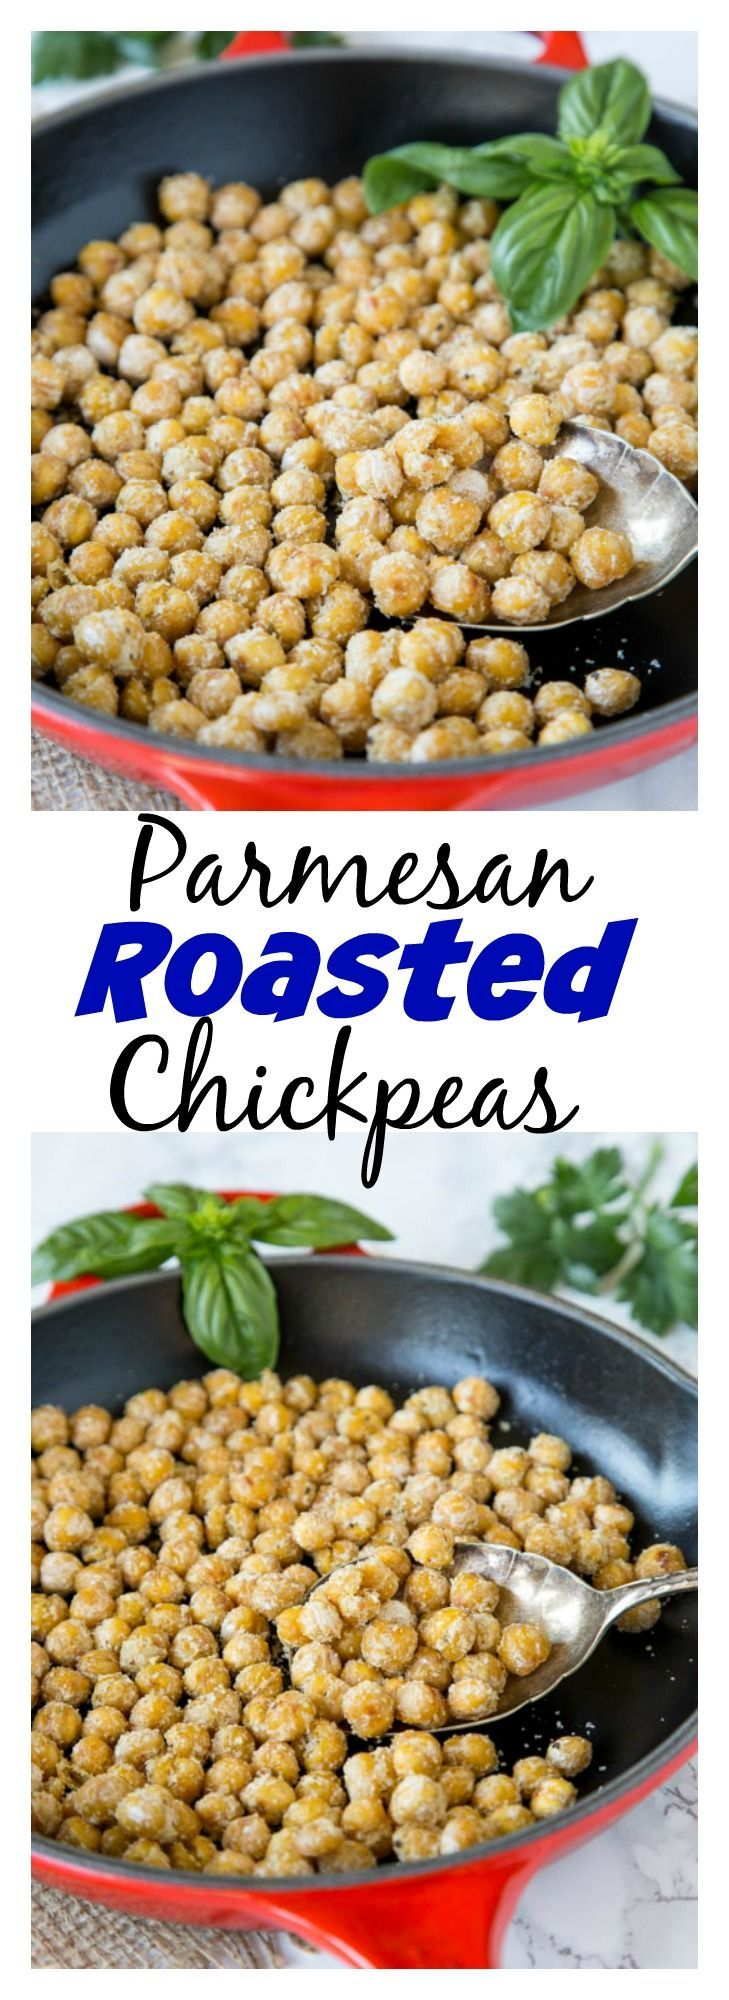 Parmesan Roasted Chickpeas – roasting chickpeas get them super crunchy. A great healthy snack or topping to a salad.